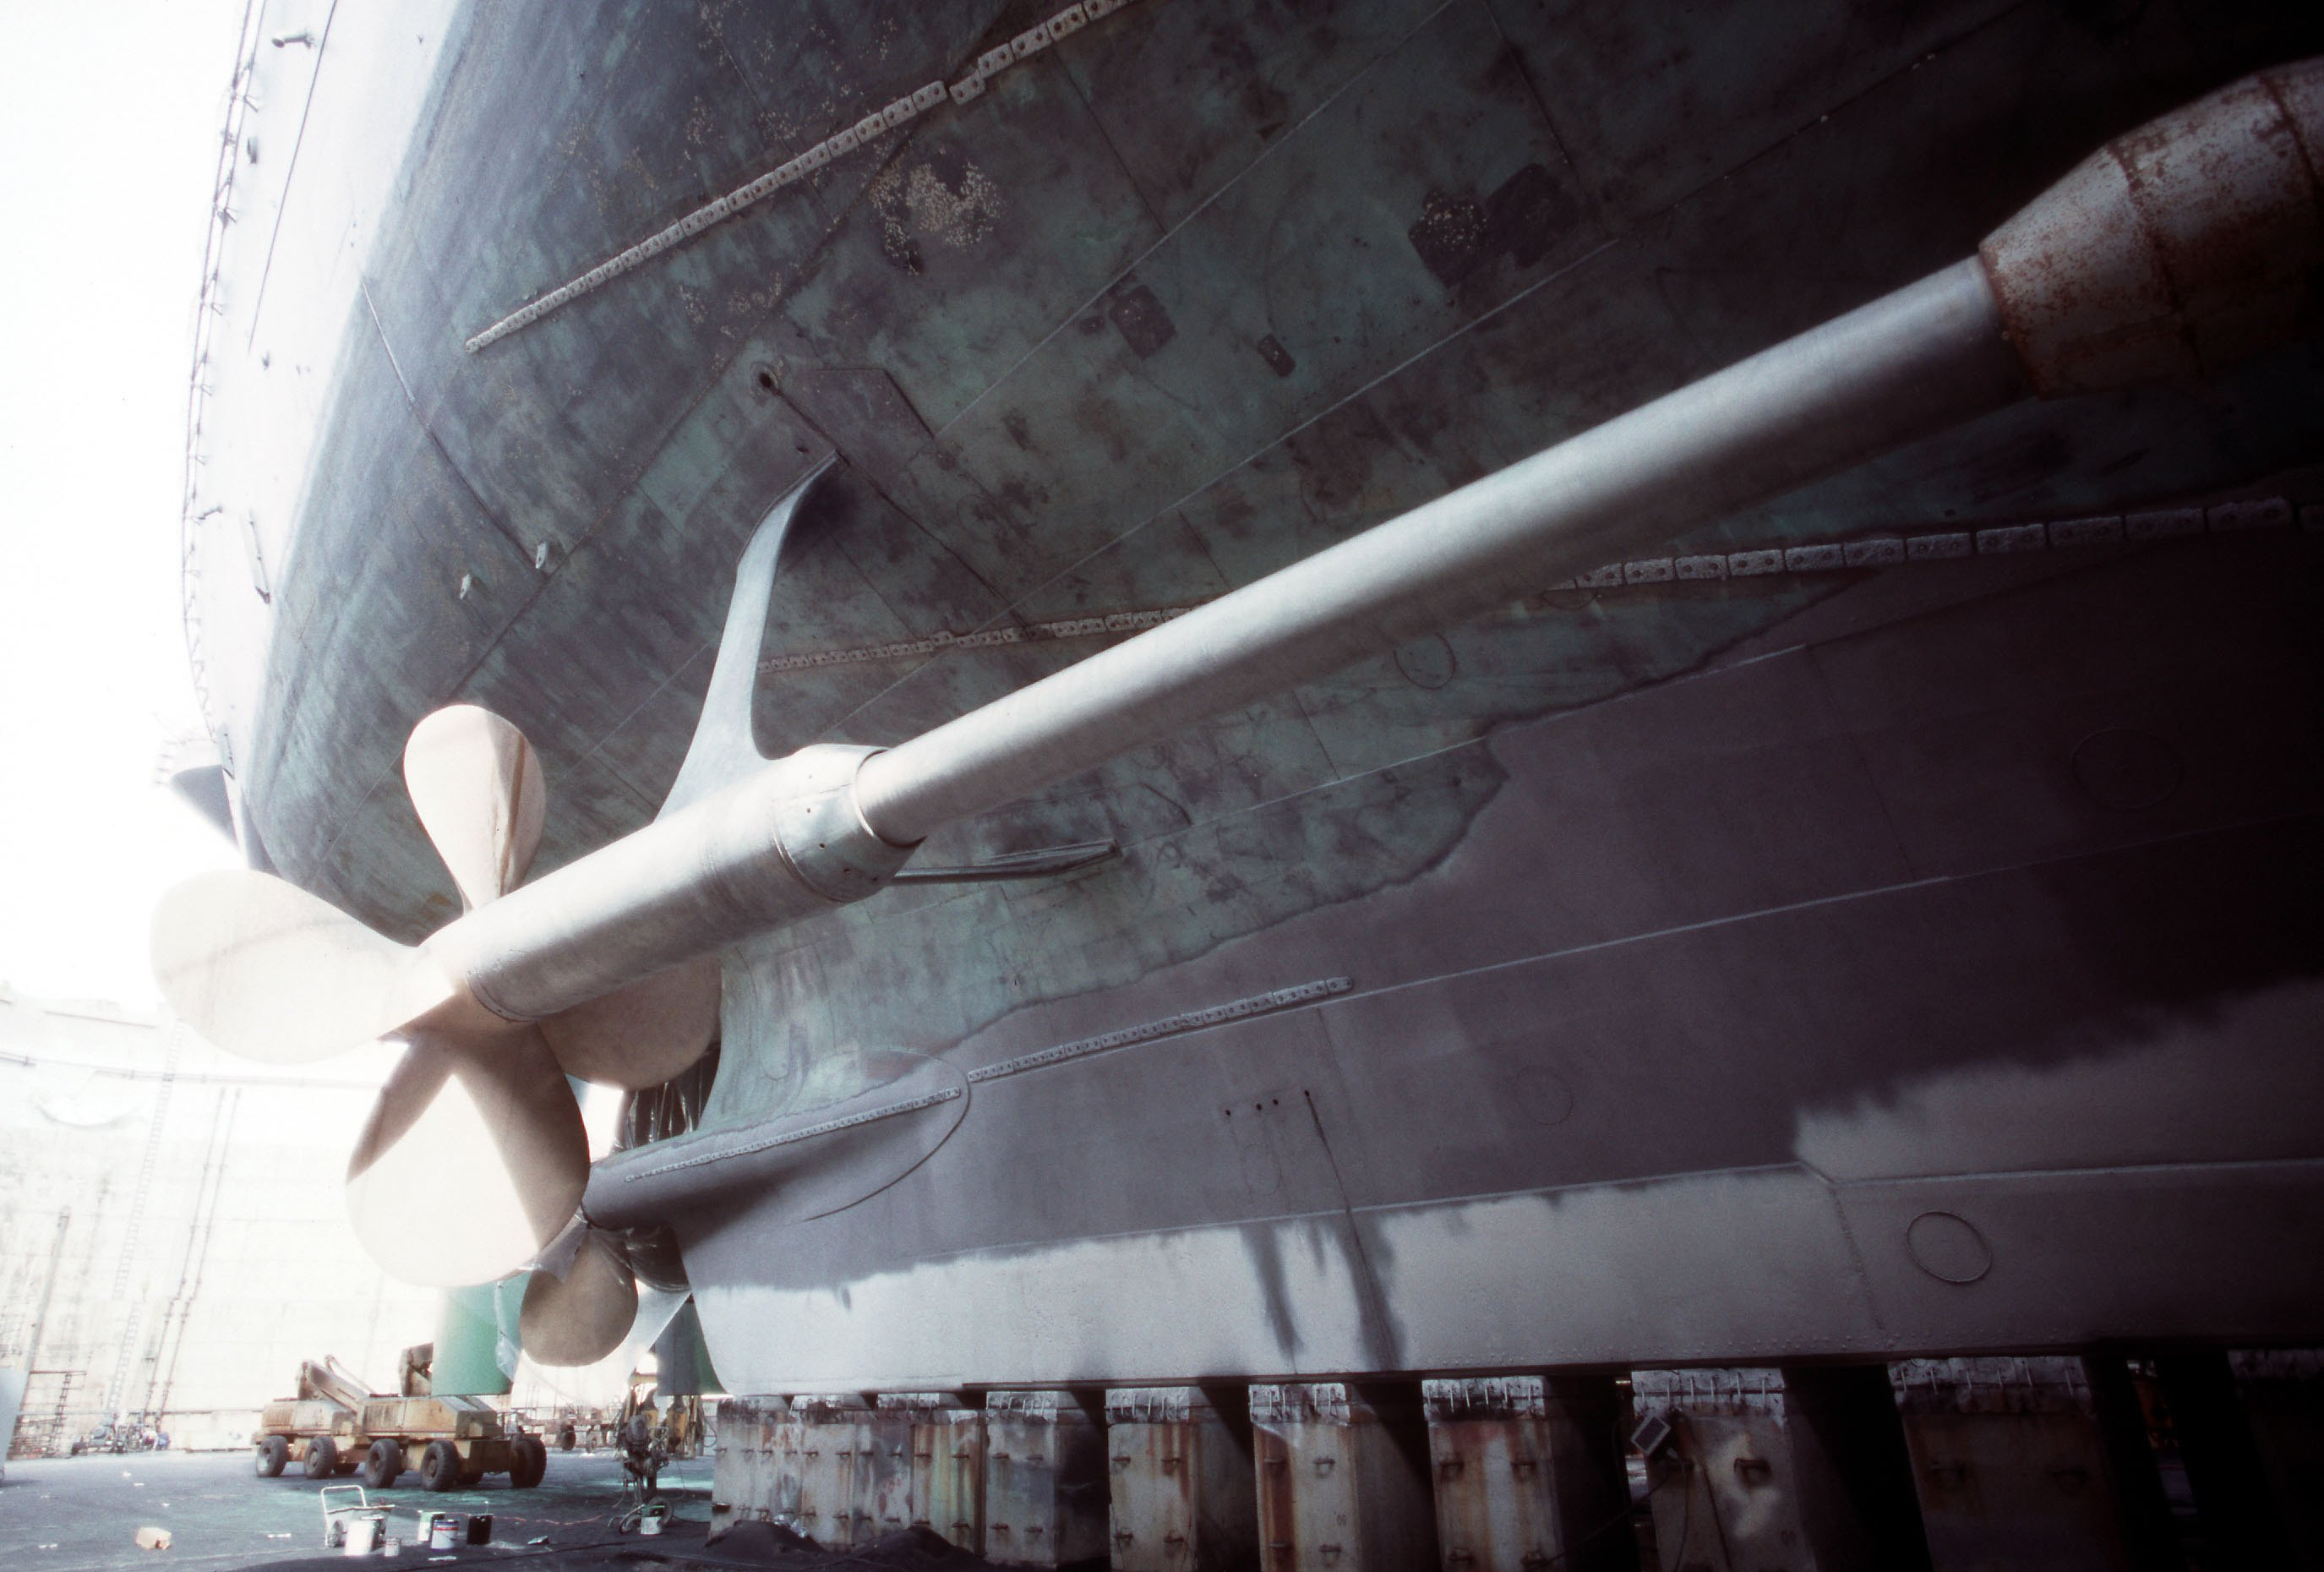 Fileuss Missouri Bb 63 Starboard Propeller Shaft Wikimedia How A Works Aviation And Engineering